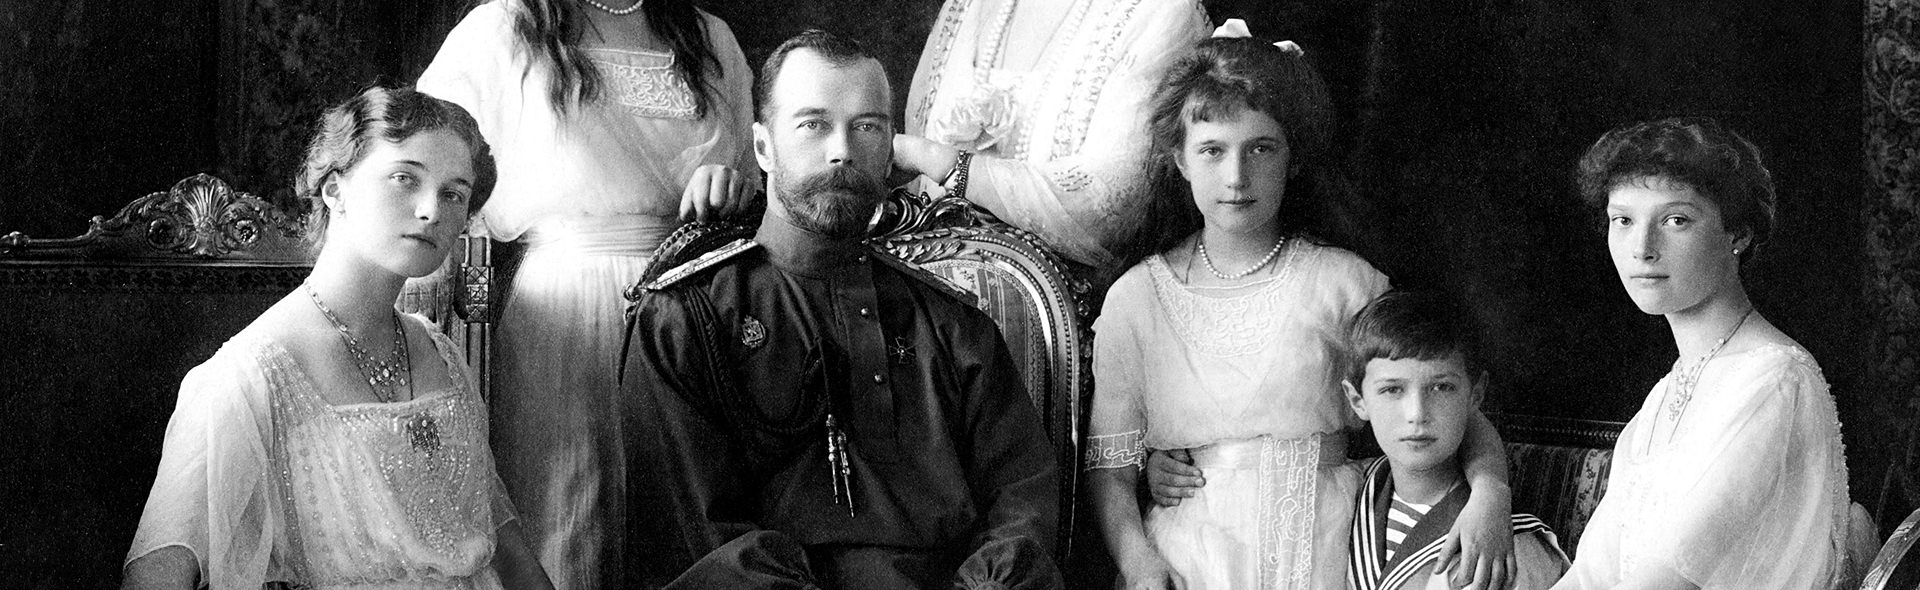 The Romanovs Imperial Family